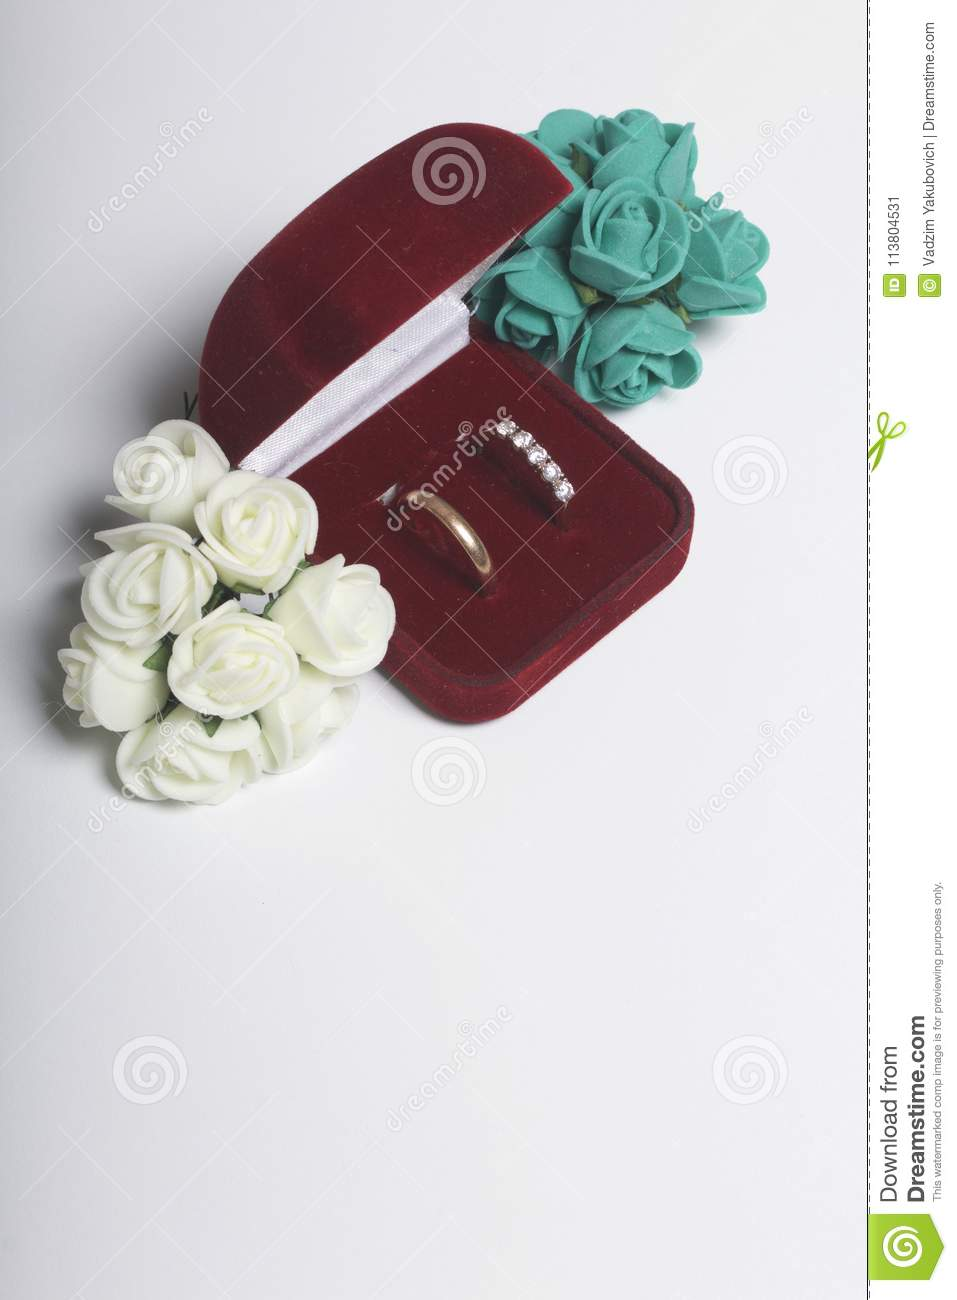 Wedding Decor. Bouquet Of Artificial Flowers And Wedding Rings In ...